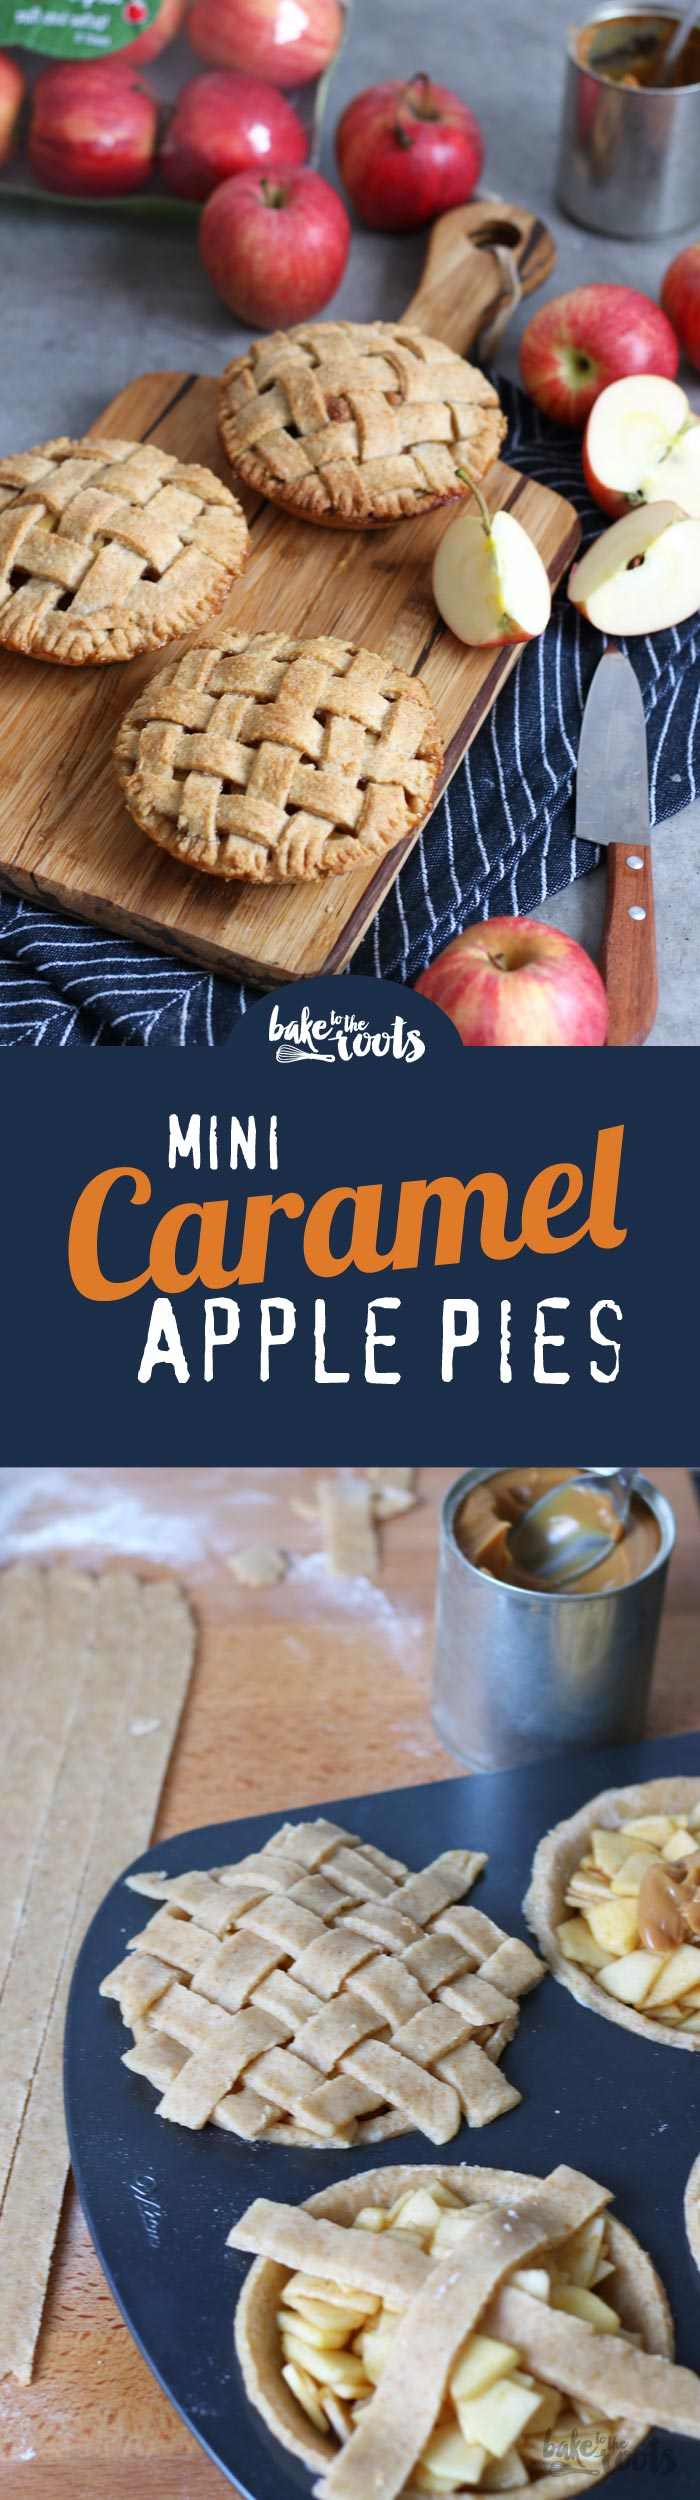 Delicious Mini Apple Pies with Caramel Dulce de Leche Filling | Bake to the roots